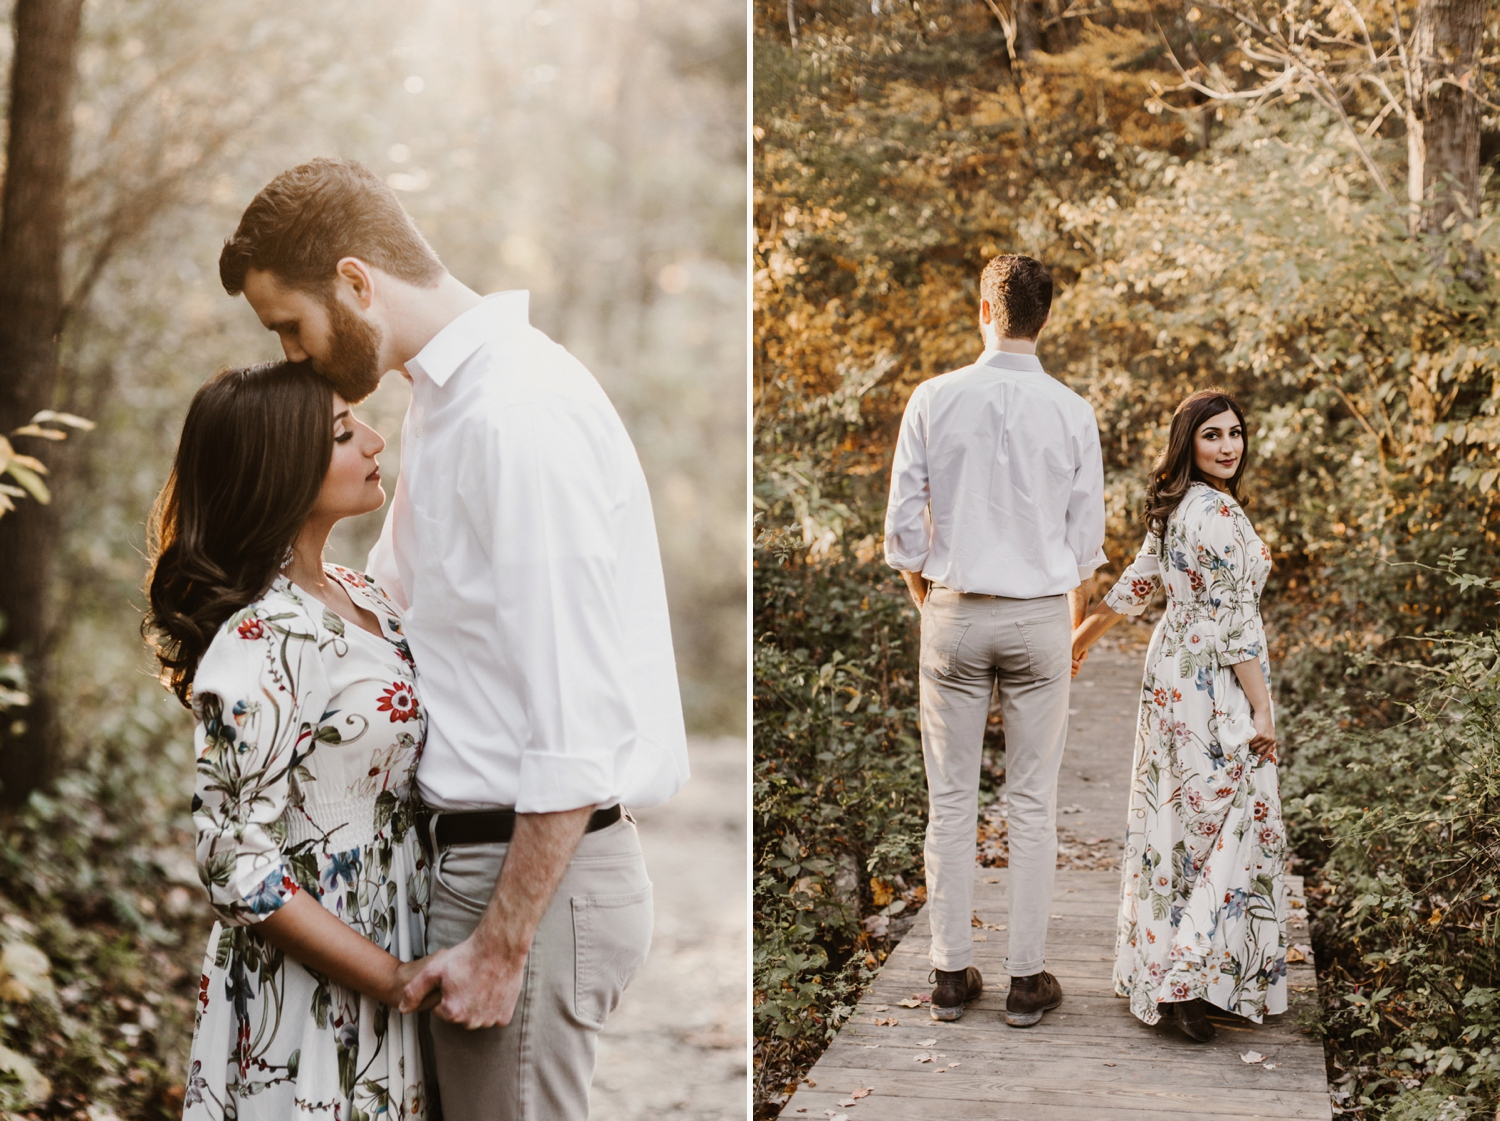 sundas-and-scotts-engagement-43_baltimore-washington-d-c-waterfall-kilgore-engagement-session-maxi-dress-earthy-maryland-wedding-photographer-kate-ann-photography-phot